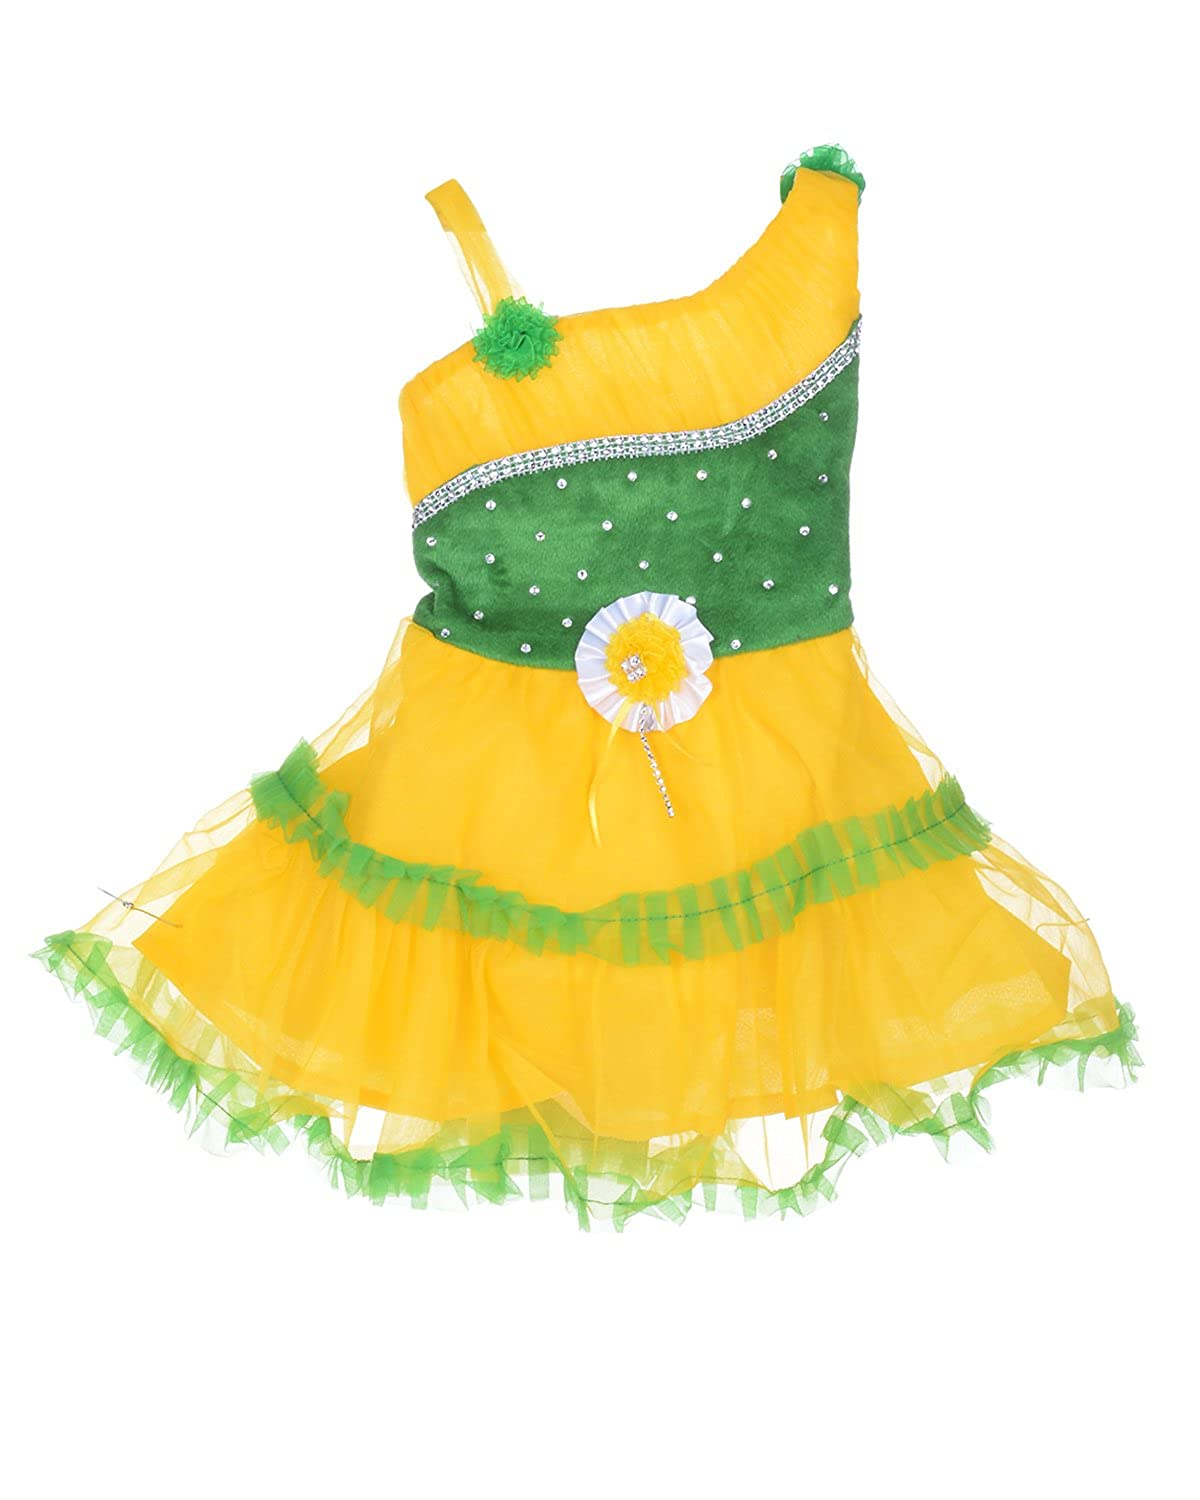 D S Fashion Baby Girls Frock Yellow Green 6 12 Months Amazon